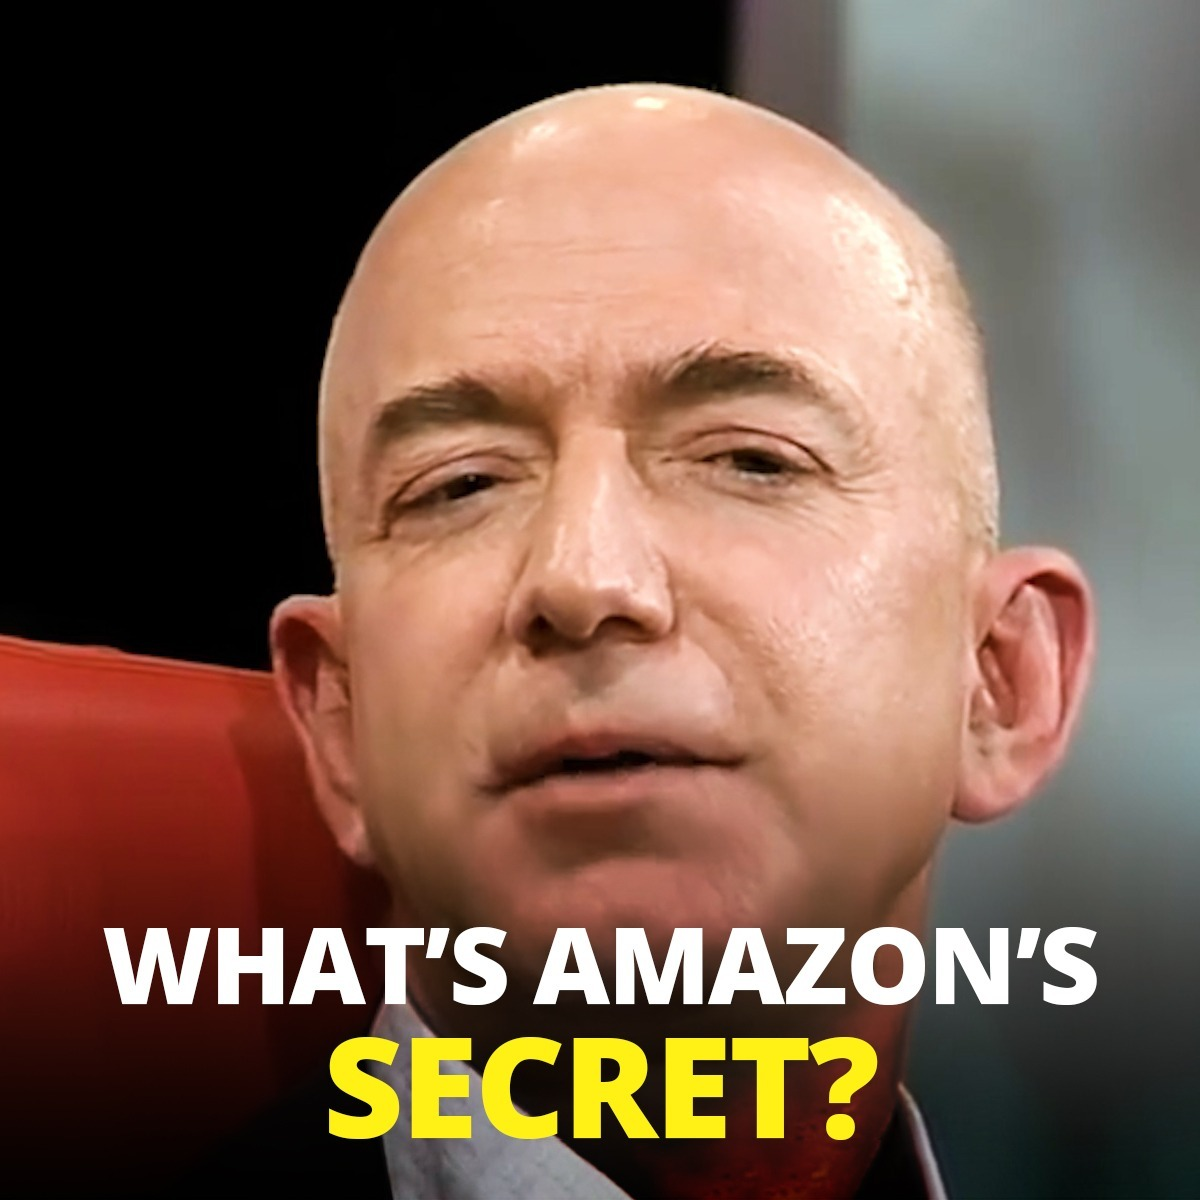 Jeff Bezos could give every Amazon worker $105,000 and he'd still be as rich as he was at the start of the pandemic  This #political #economy rewards worker exploitation & monopoly power with unimaginable wealth  #MakeAmazonPay #MoneyRebellion